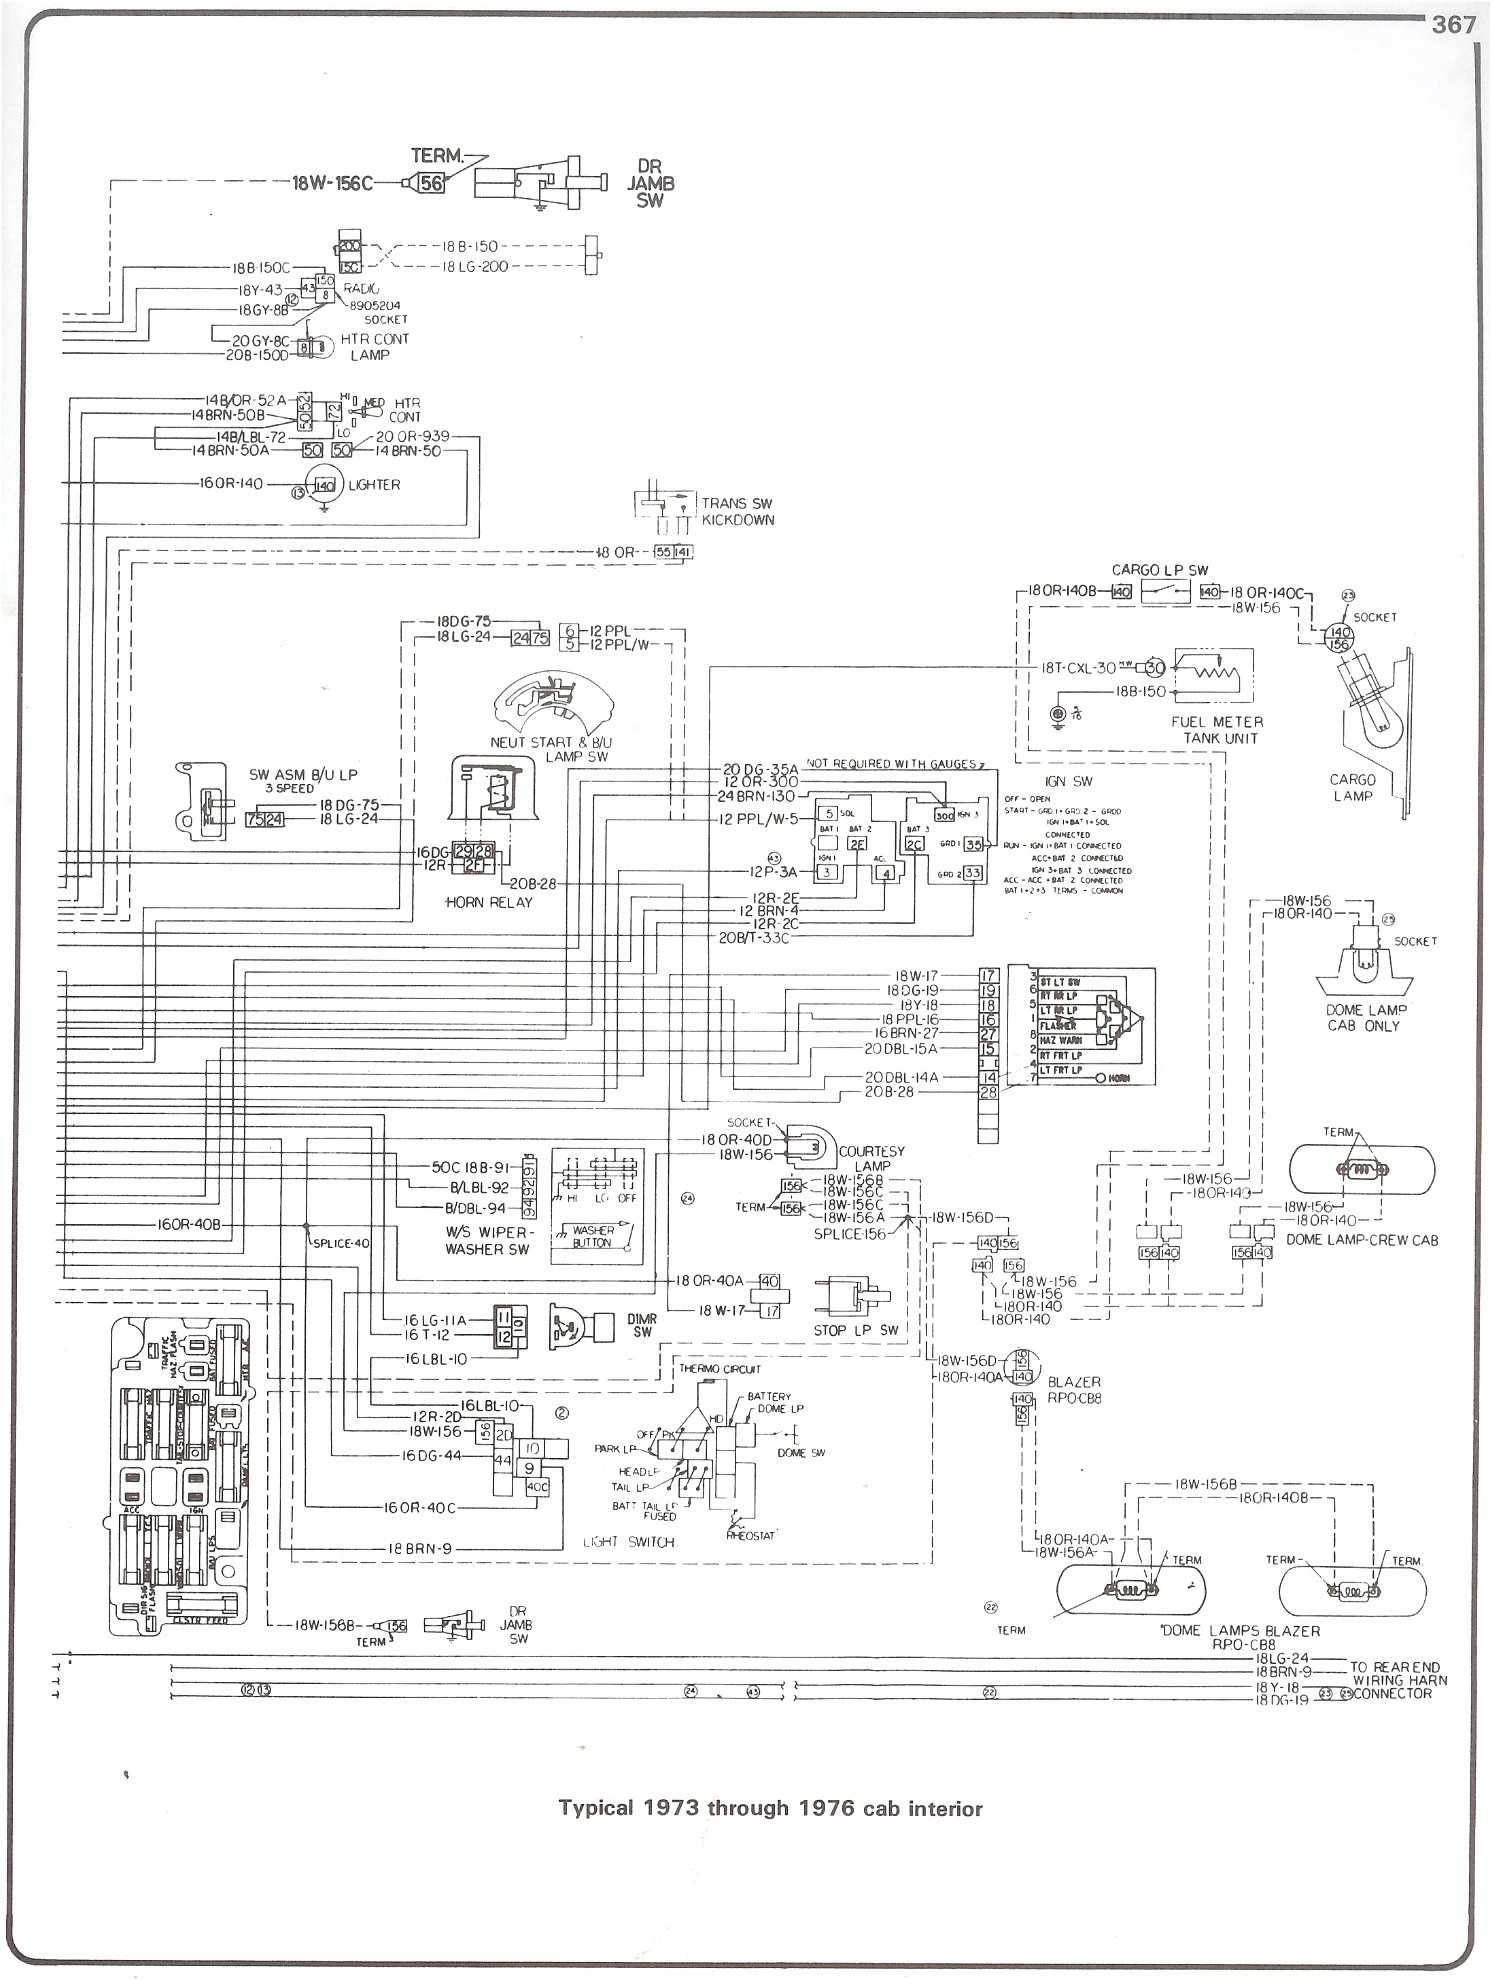 hight resolution of complete 73 87 wiring diagrams k5 blazer parts 73 k5 blazer wiring diagram